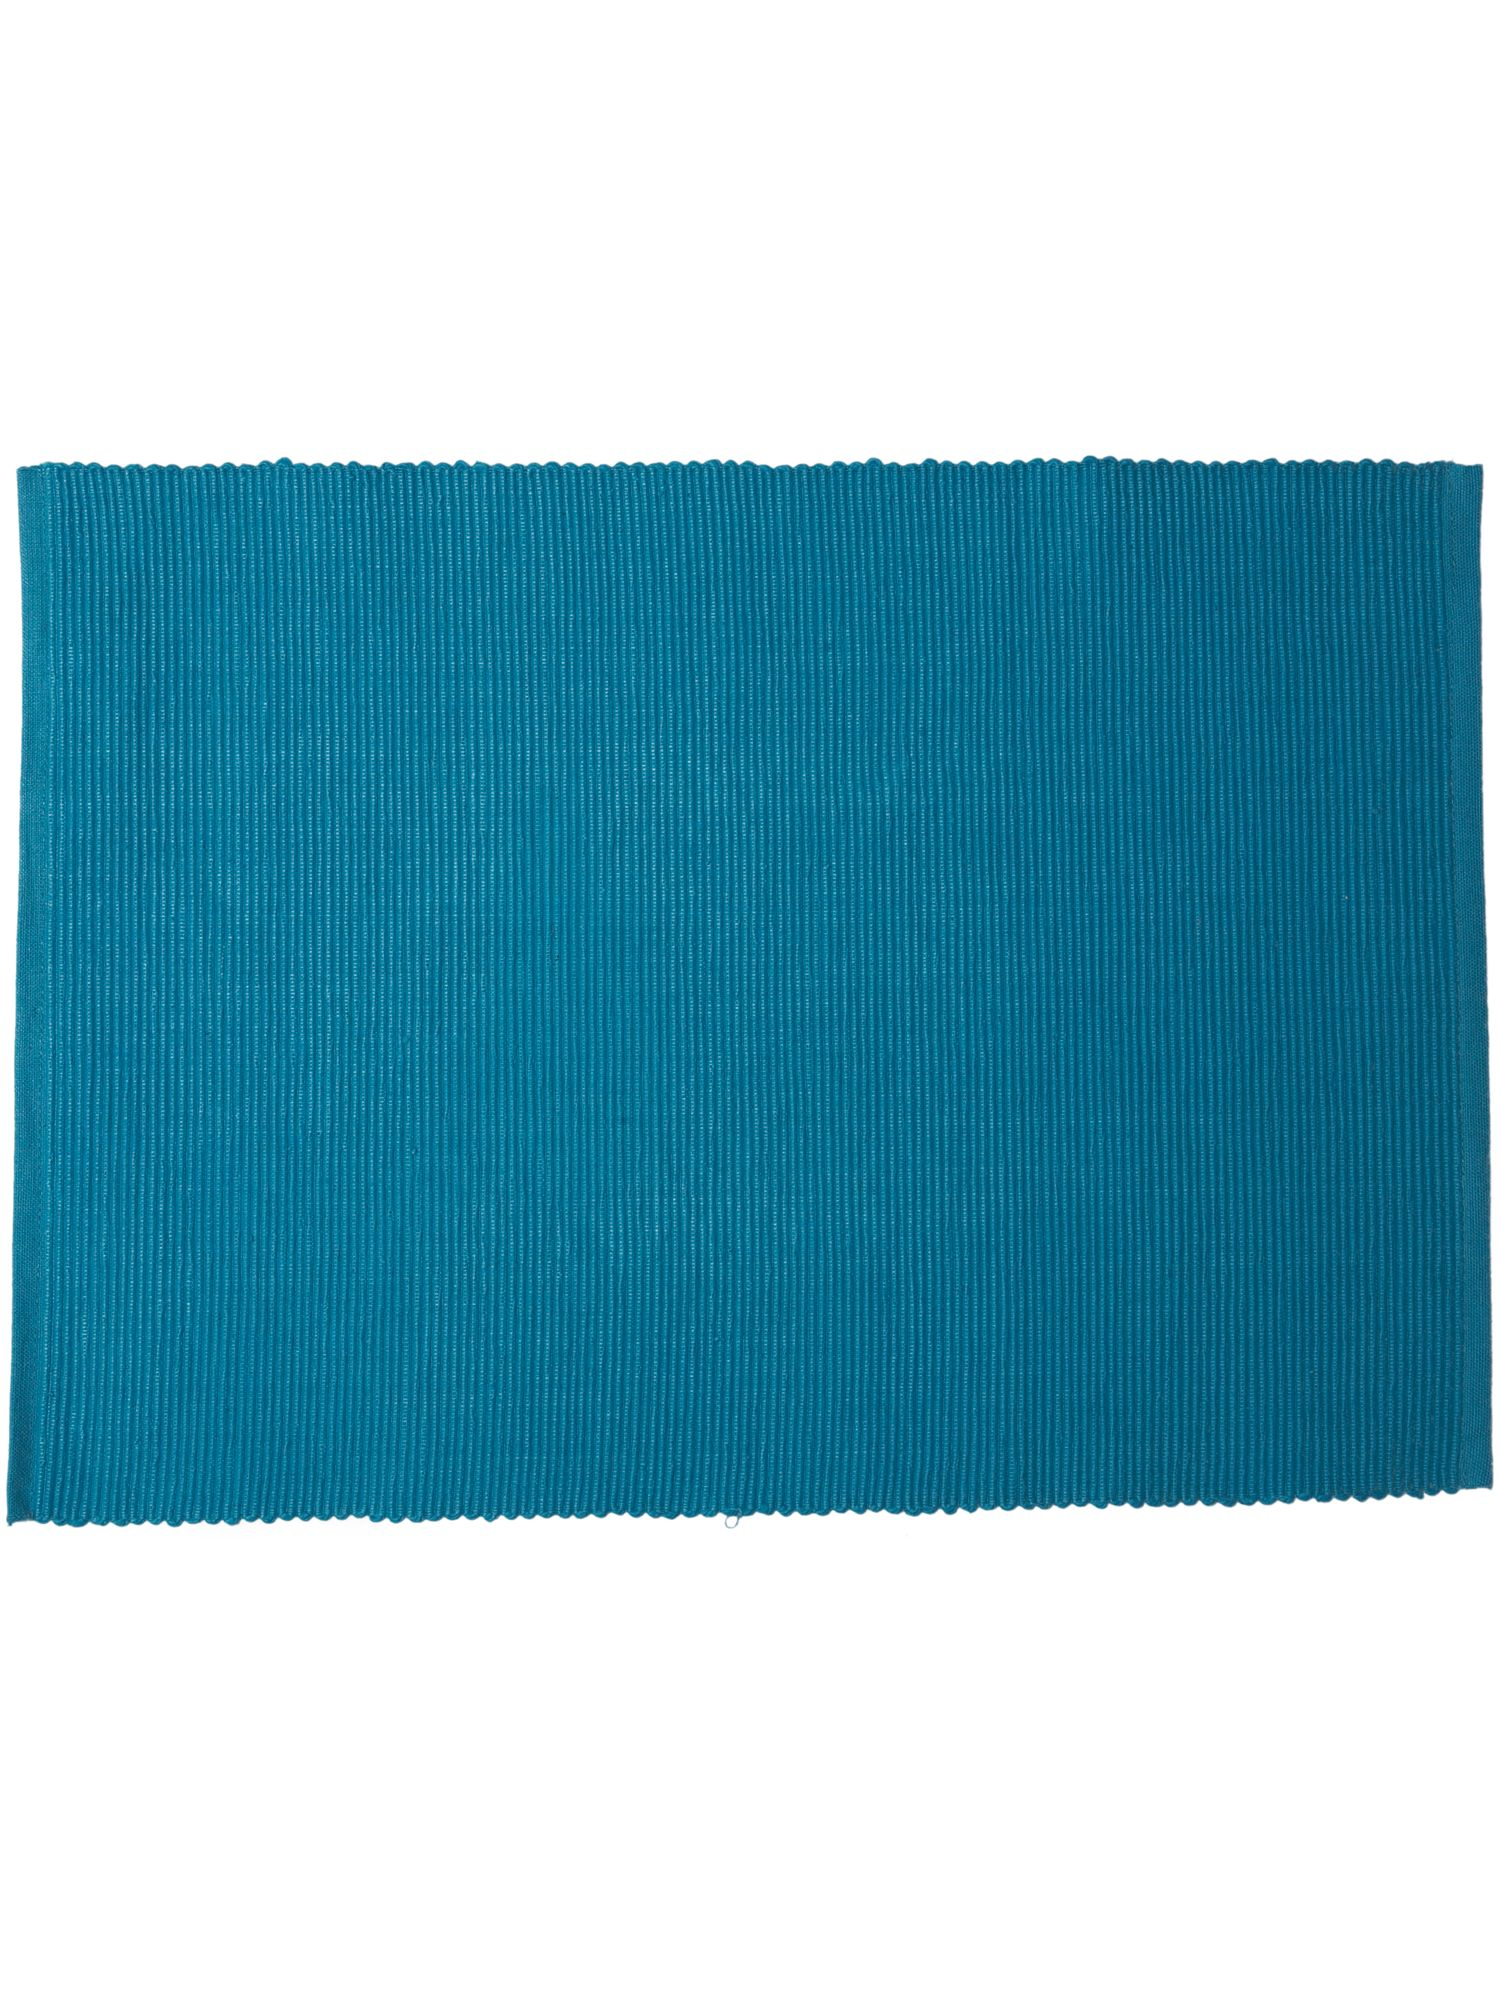 Collage turquoise placemat